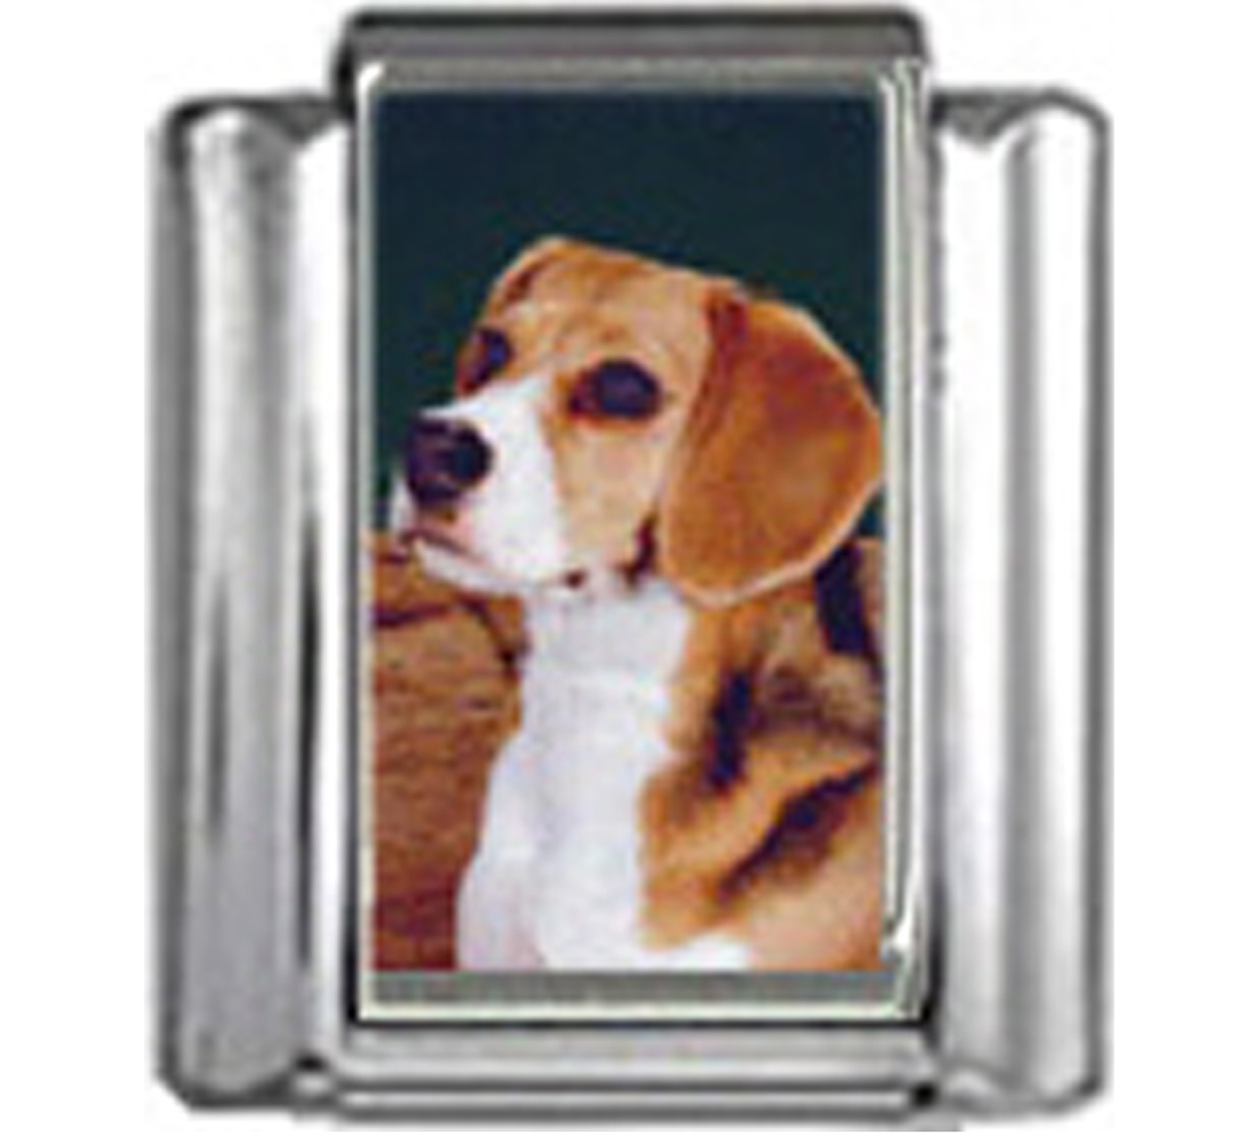 DG056-Beagle-Dog-3